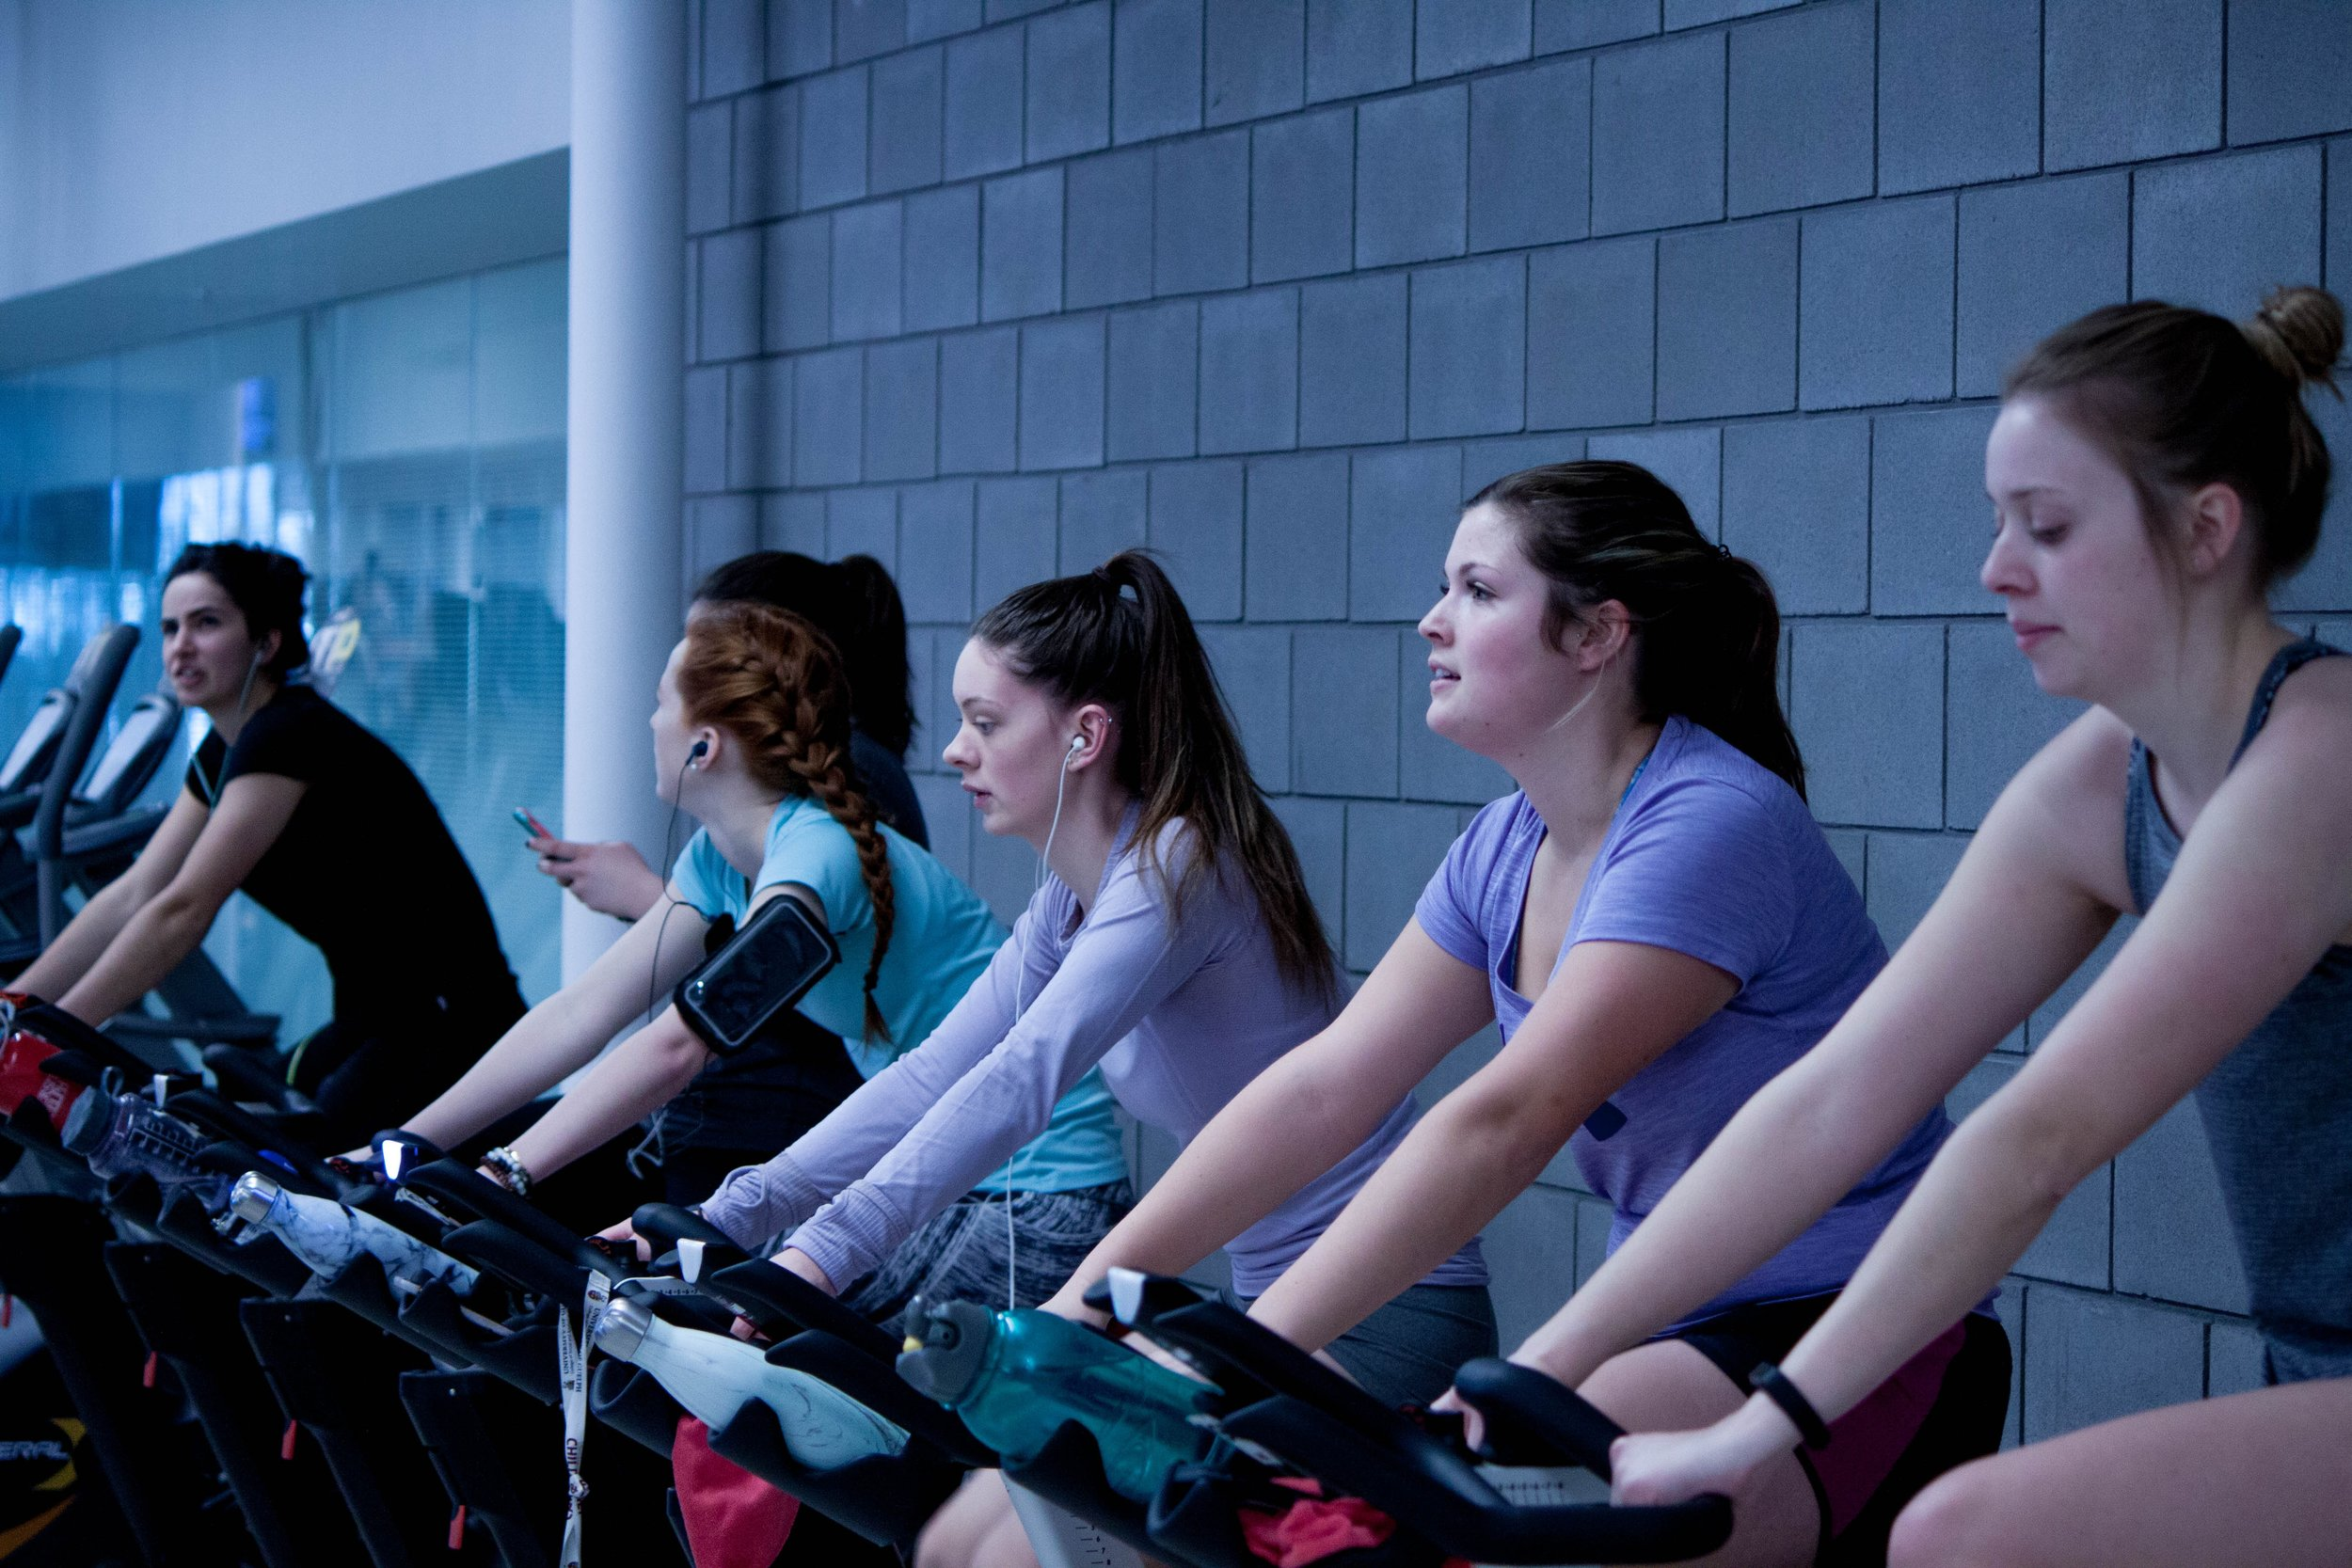 Cycle - Take the ultimate ride! Cycle incorporates cycling, choreography and motivational coaching techniques to give you a completely safe, aerobic and adrenaline pumping ride. Find out why Cycle is totally addictive! ** Limited spaces so grab a tag from reception to secure your spot.Duration - 30 or 45mins (see the timetable for details)